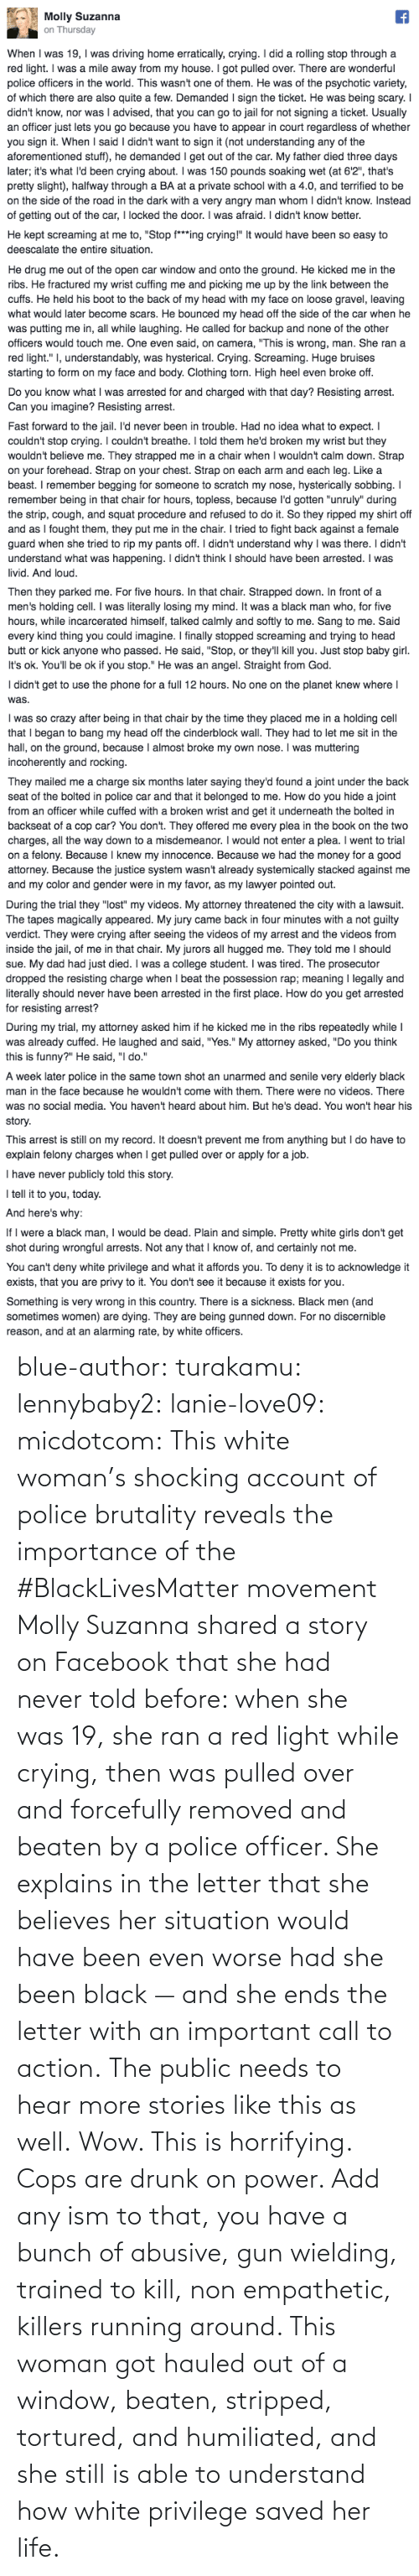 medium: blue-author: turakamu:  lennybaby2:  lanie-love09:  micdotcom:  This white woman's shocking account of police brutality reveals the importance of the #BlackLivesMatter movement Molly Suzanna shared a story on Facebook that she had never told before: when she was 19, she ran a red light while crying, then was pulled over and forcefully removed and beaten by a police officer. She explains in the letter that she believes her situation would have been even worse had she been black — and she ends the letter with an important call to action.  The public needs to hear more stories like this as well.  Wow. This is horrifying.  Cops are drunk on power. Add any ism to that, you have a bunch of abusive, gun wielding, trained to kill, non empathetic, killers running around.    This woman got hauled out of a window, beaten, stripped, tortured, and humiliated, and she still is able to understand how white privilege saved her life.